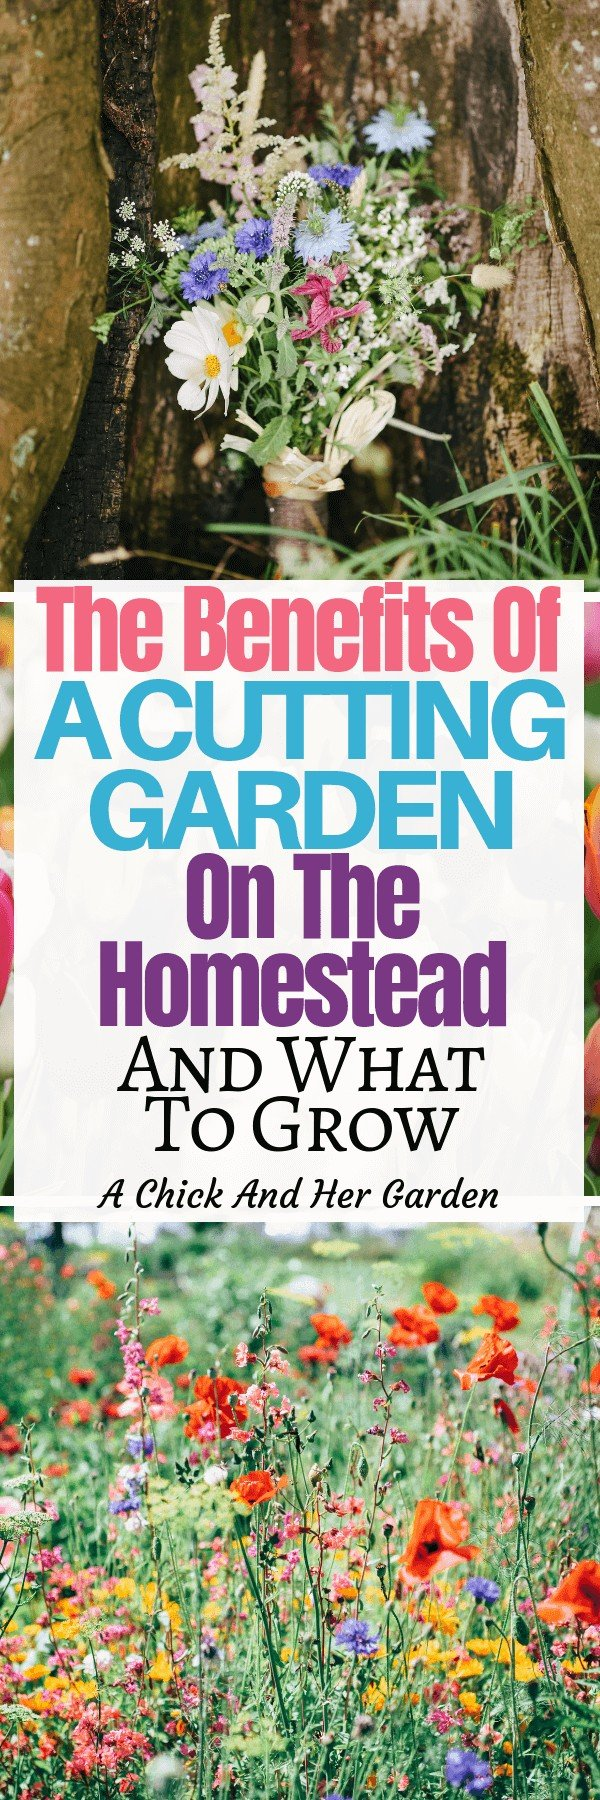 Flowers were never something I was overly concerned about. Check out why I was so wrong! You NEED a cutting garden on the homestead! #wildflowers #growingflowers #cuttinggarden #flowers #achickandhergarden